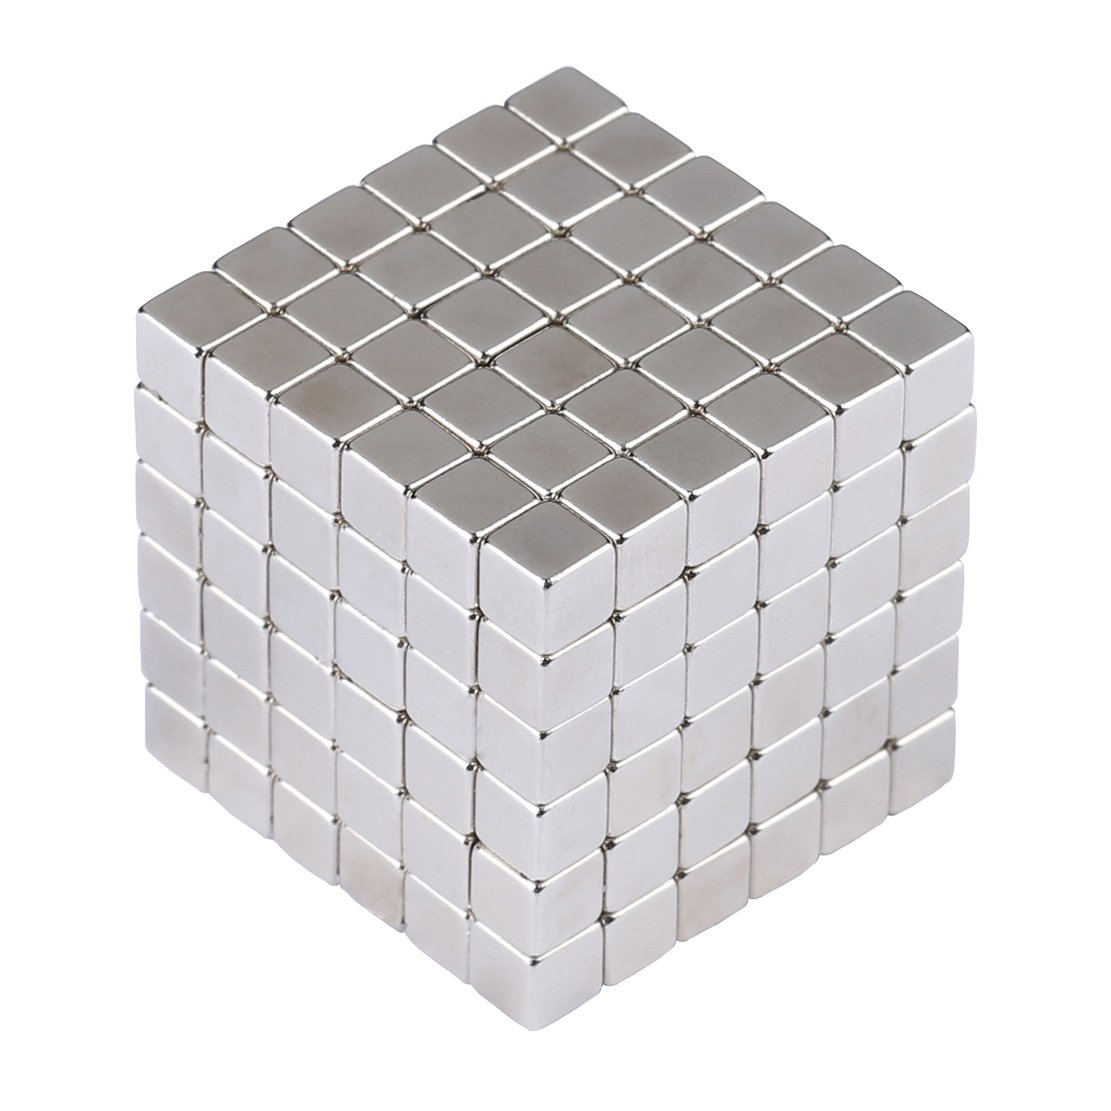 Magnetic Cube EJOYFL 216 Pcs 5mm Magnetic Square Magnetic Block DIY PuzzleEducational Toys for kids Intelligence and Creativity Development by EJOYFL (Image #2)